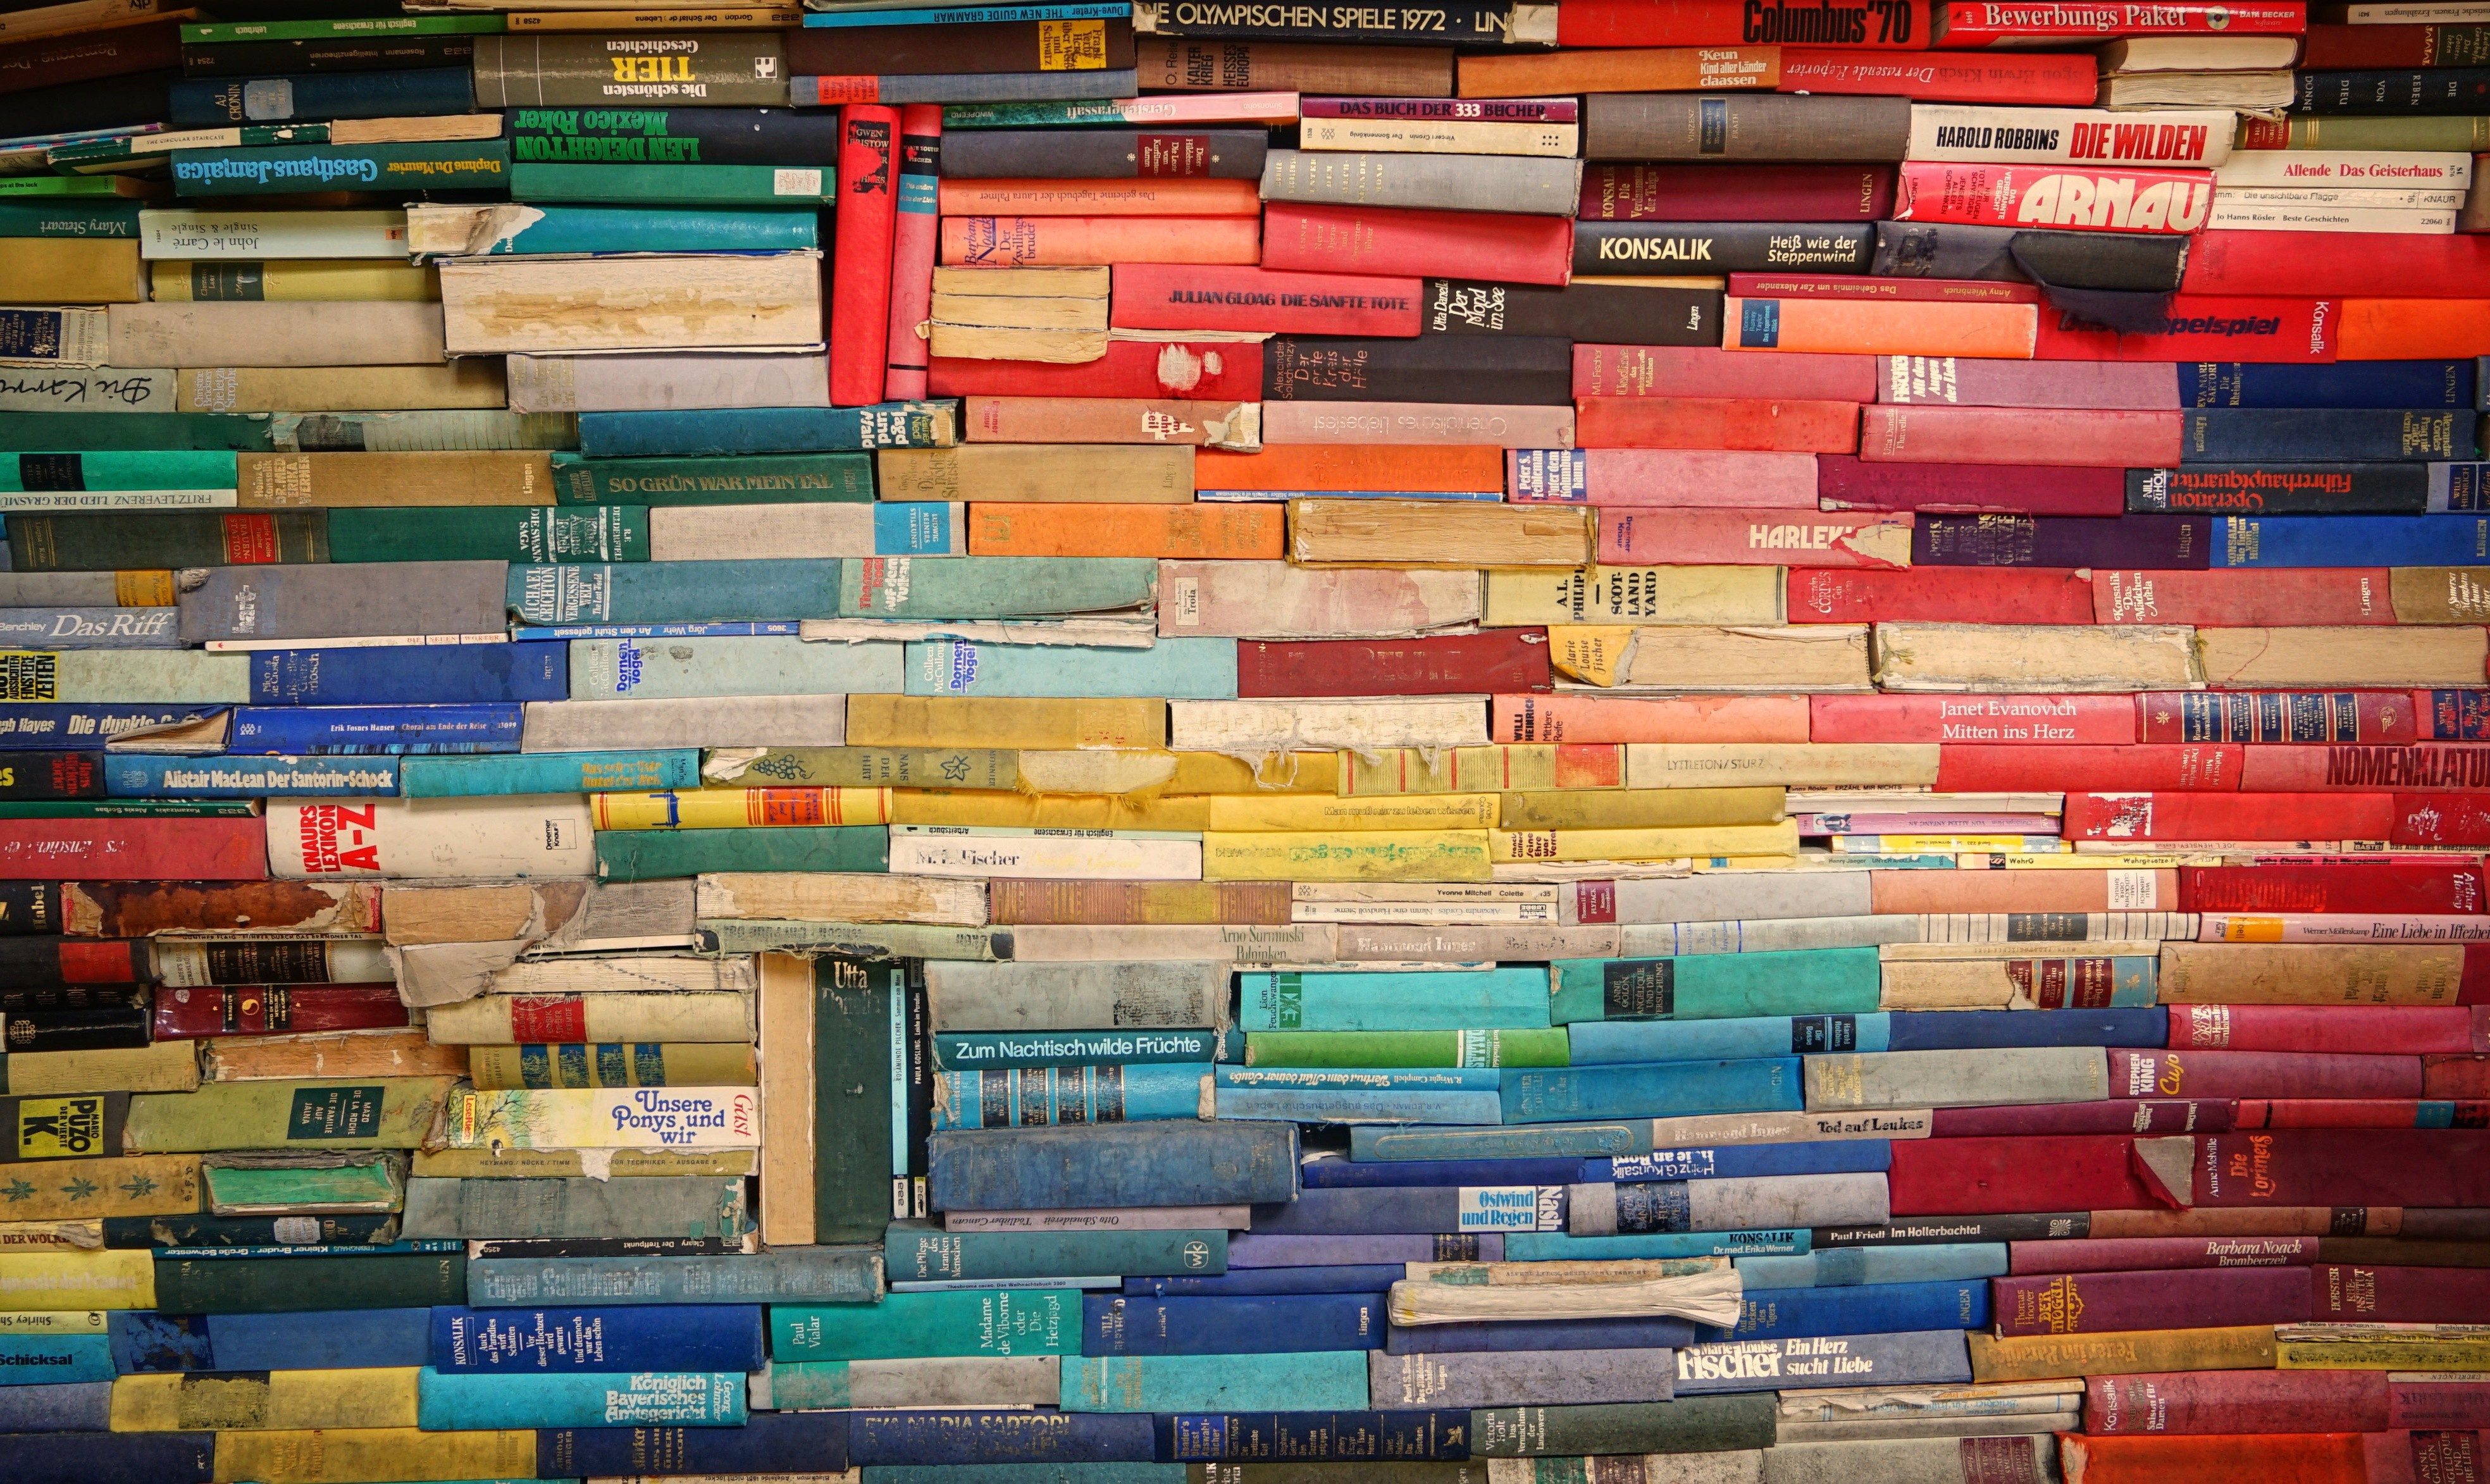 A pile of old, fading books arranged in a quasi-rainbow pattern